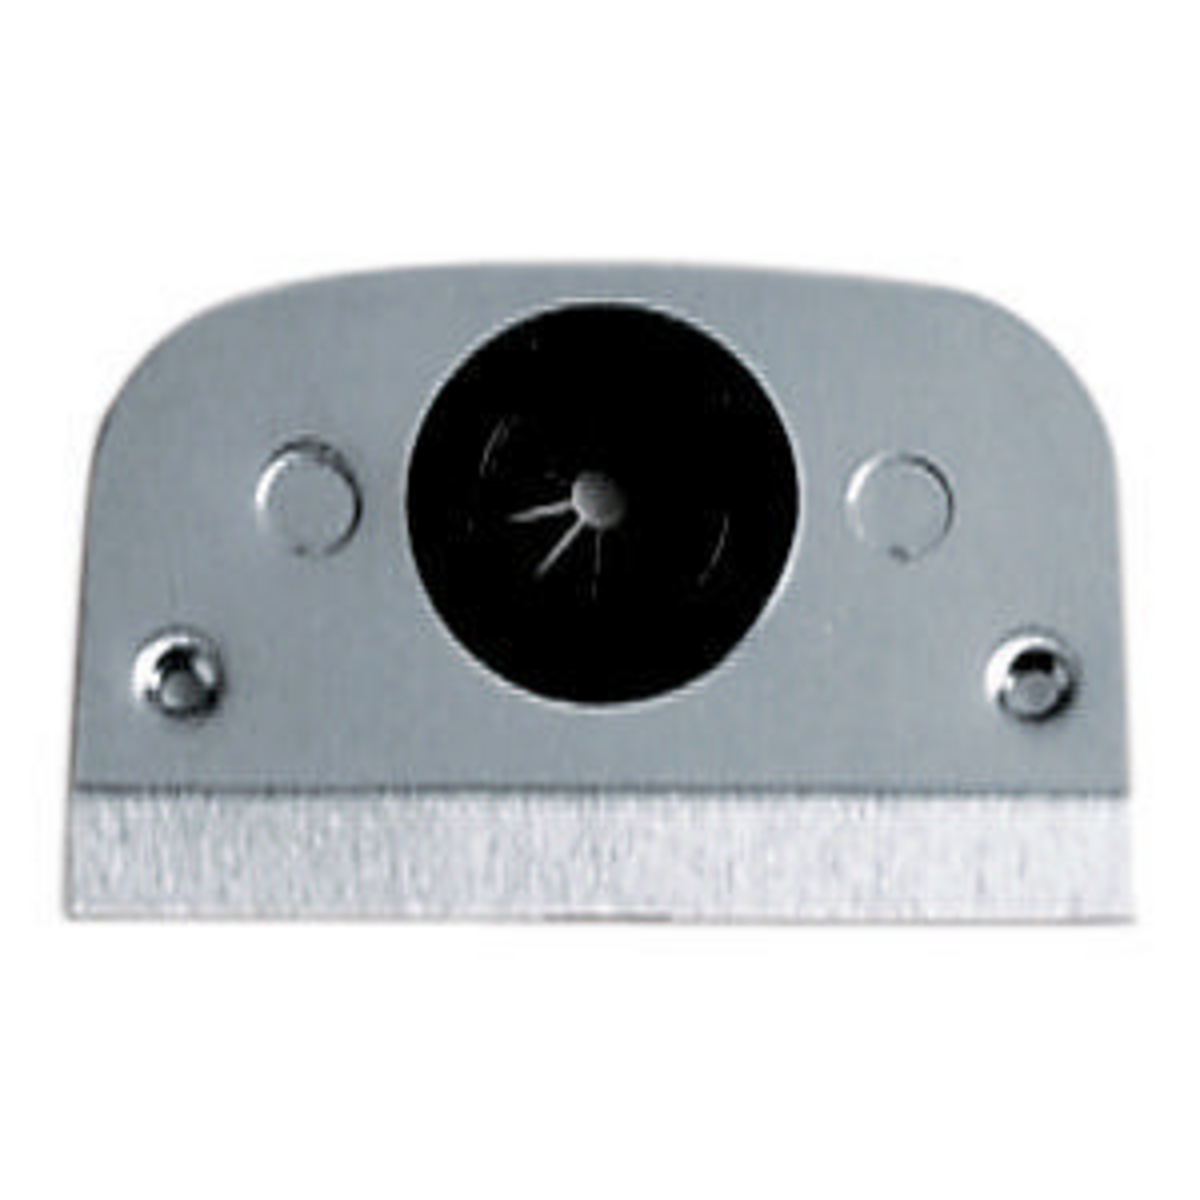 Hubbell SS309T 1 Inch Opening Stainless Steel Pedestal Face Plate